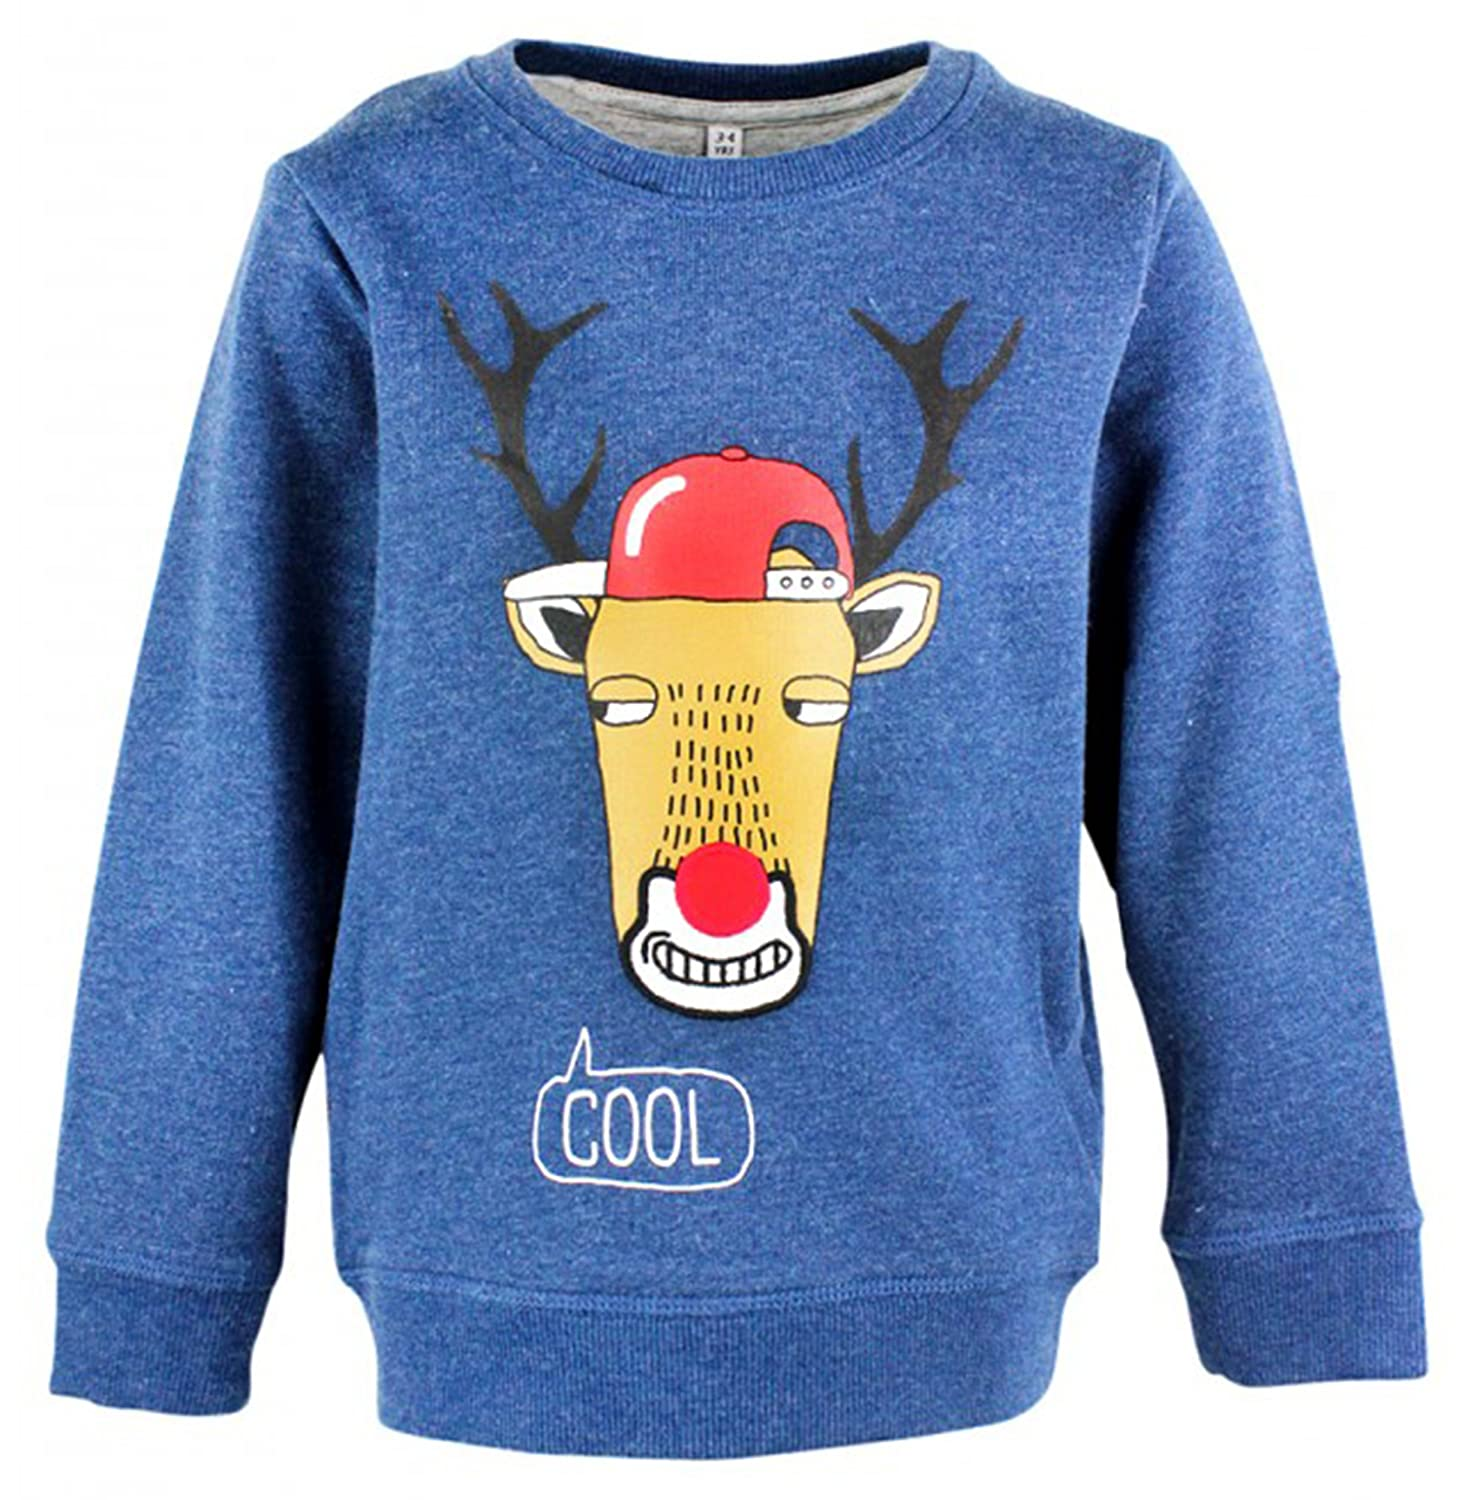 Boys Cool Team Rudolph Xmas Sweater Jumper Christmas Top Sizes from 12 Months to 2 Years